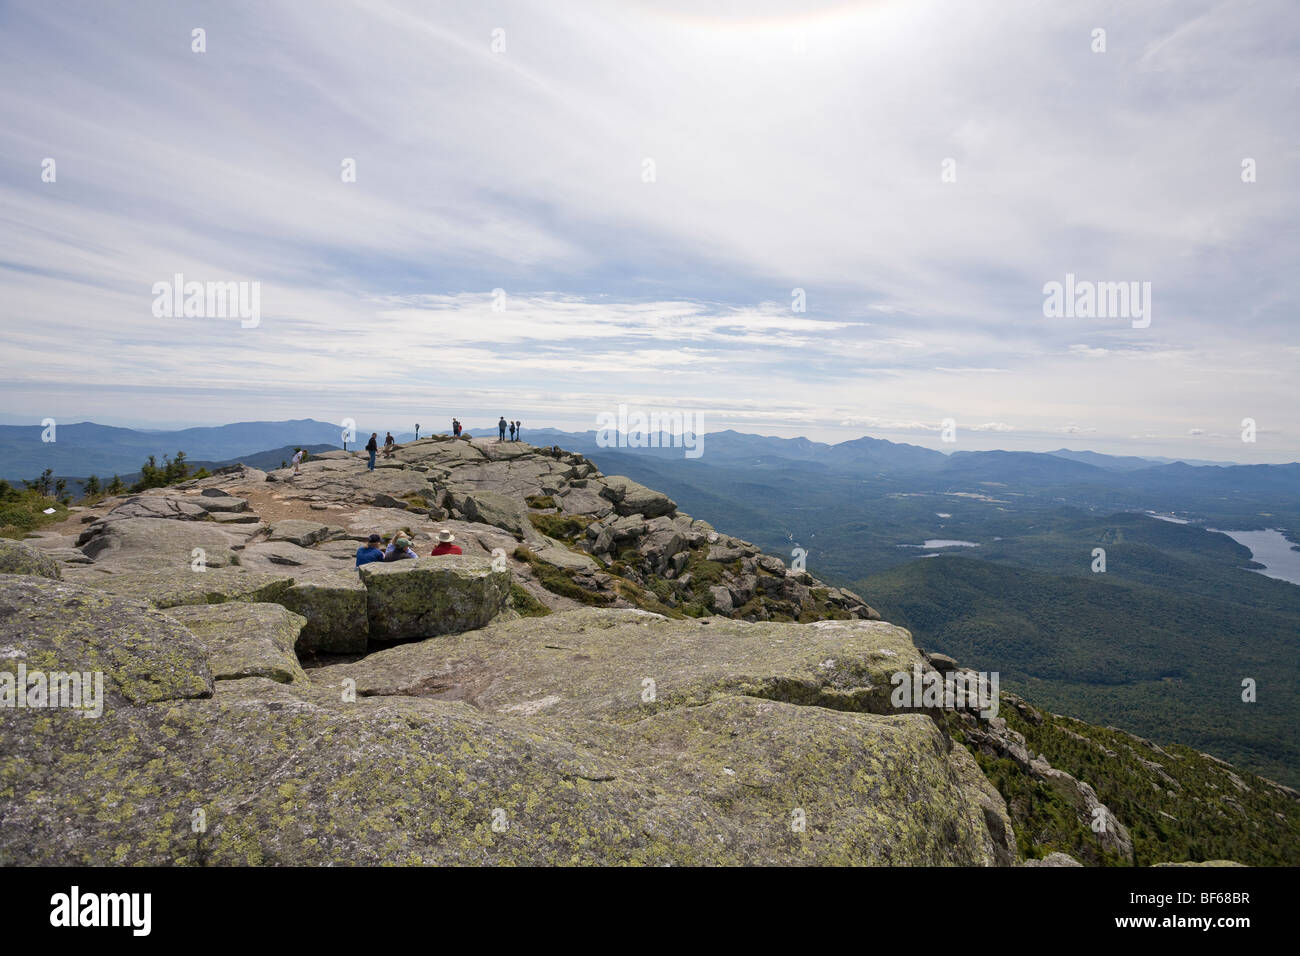 Whiteface View from the peak. Visitors to the famous mountain peak wander about and enjoy view of the Adirondack - Stock Image